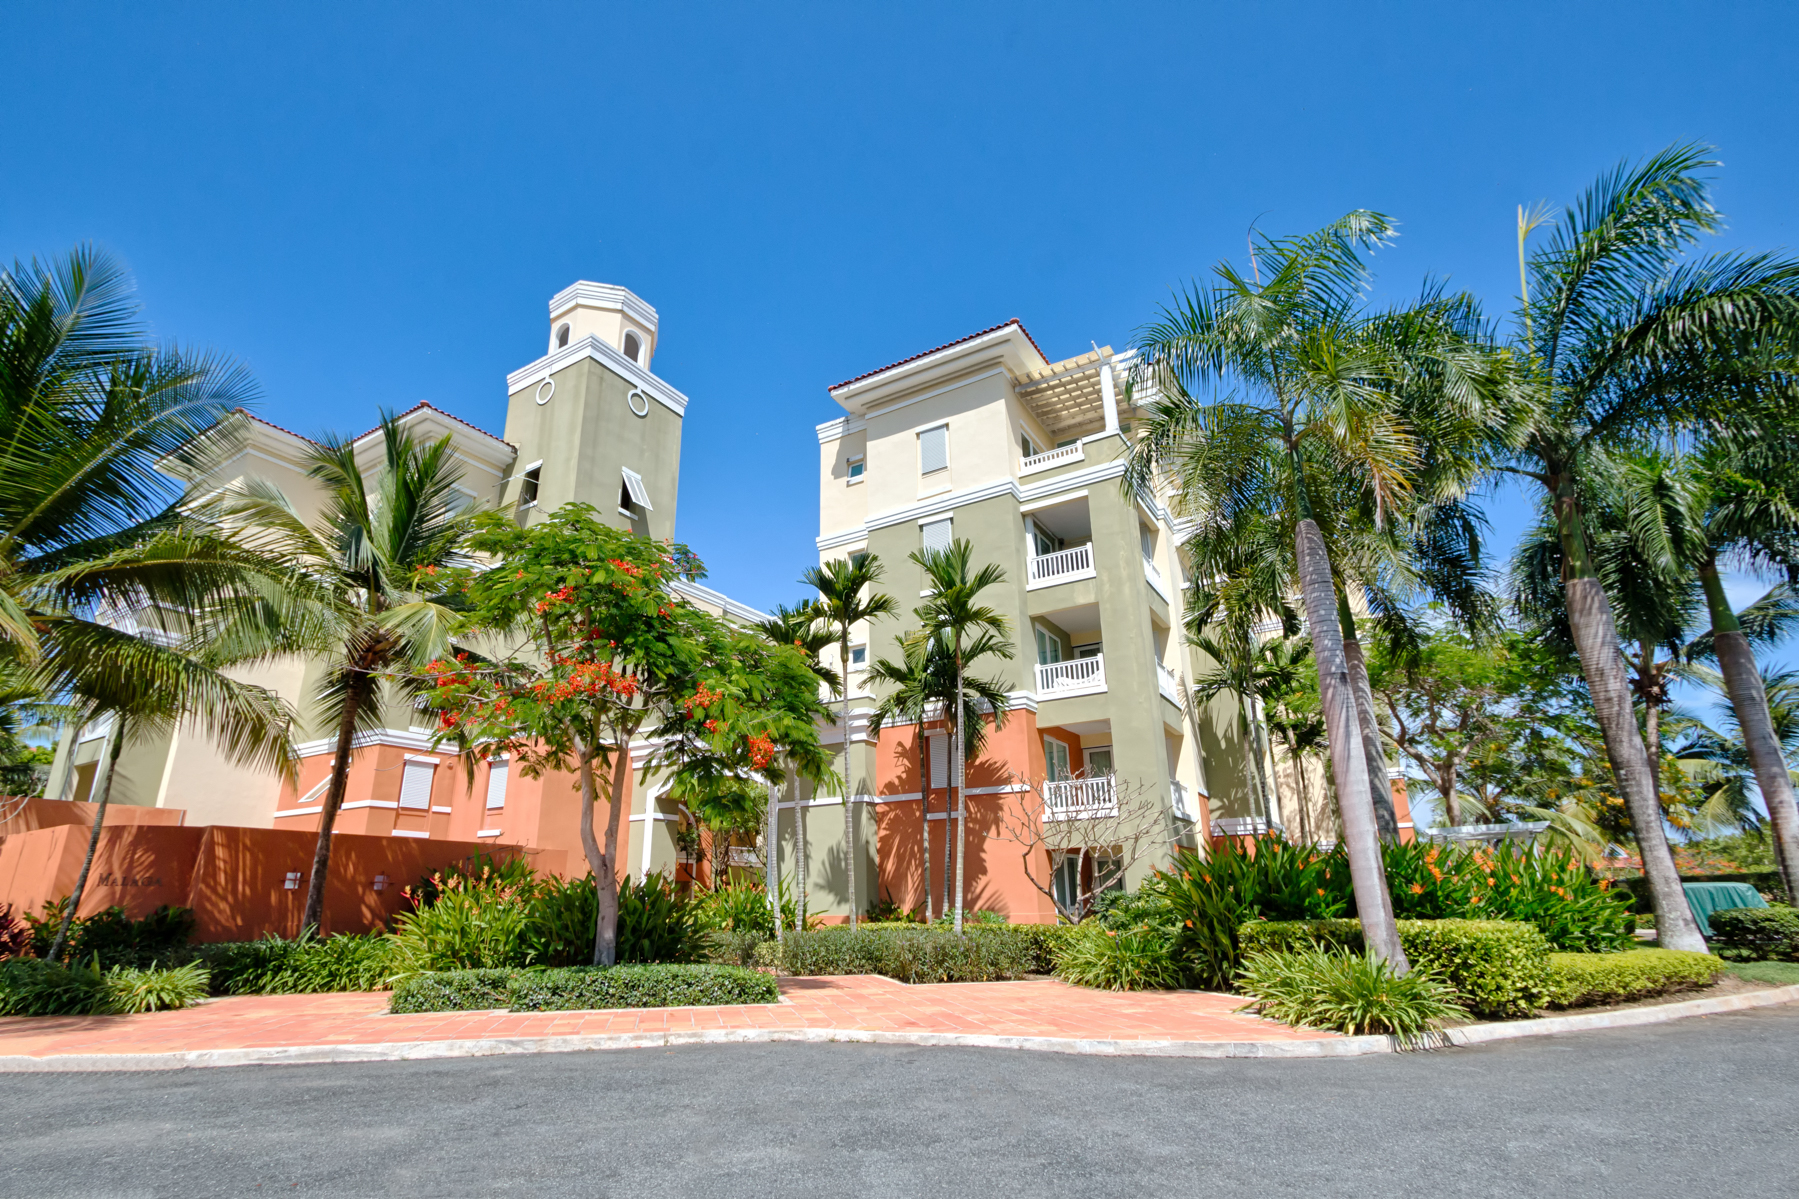 Additional photo for property listing at 4th Floor Ocean Views at Marbella Club 100 Ocean Drive, Apt 141 Palmas Del Mar, Puerto Rico 00791 プエルトリコ